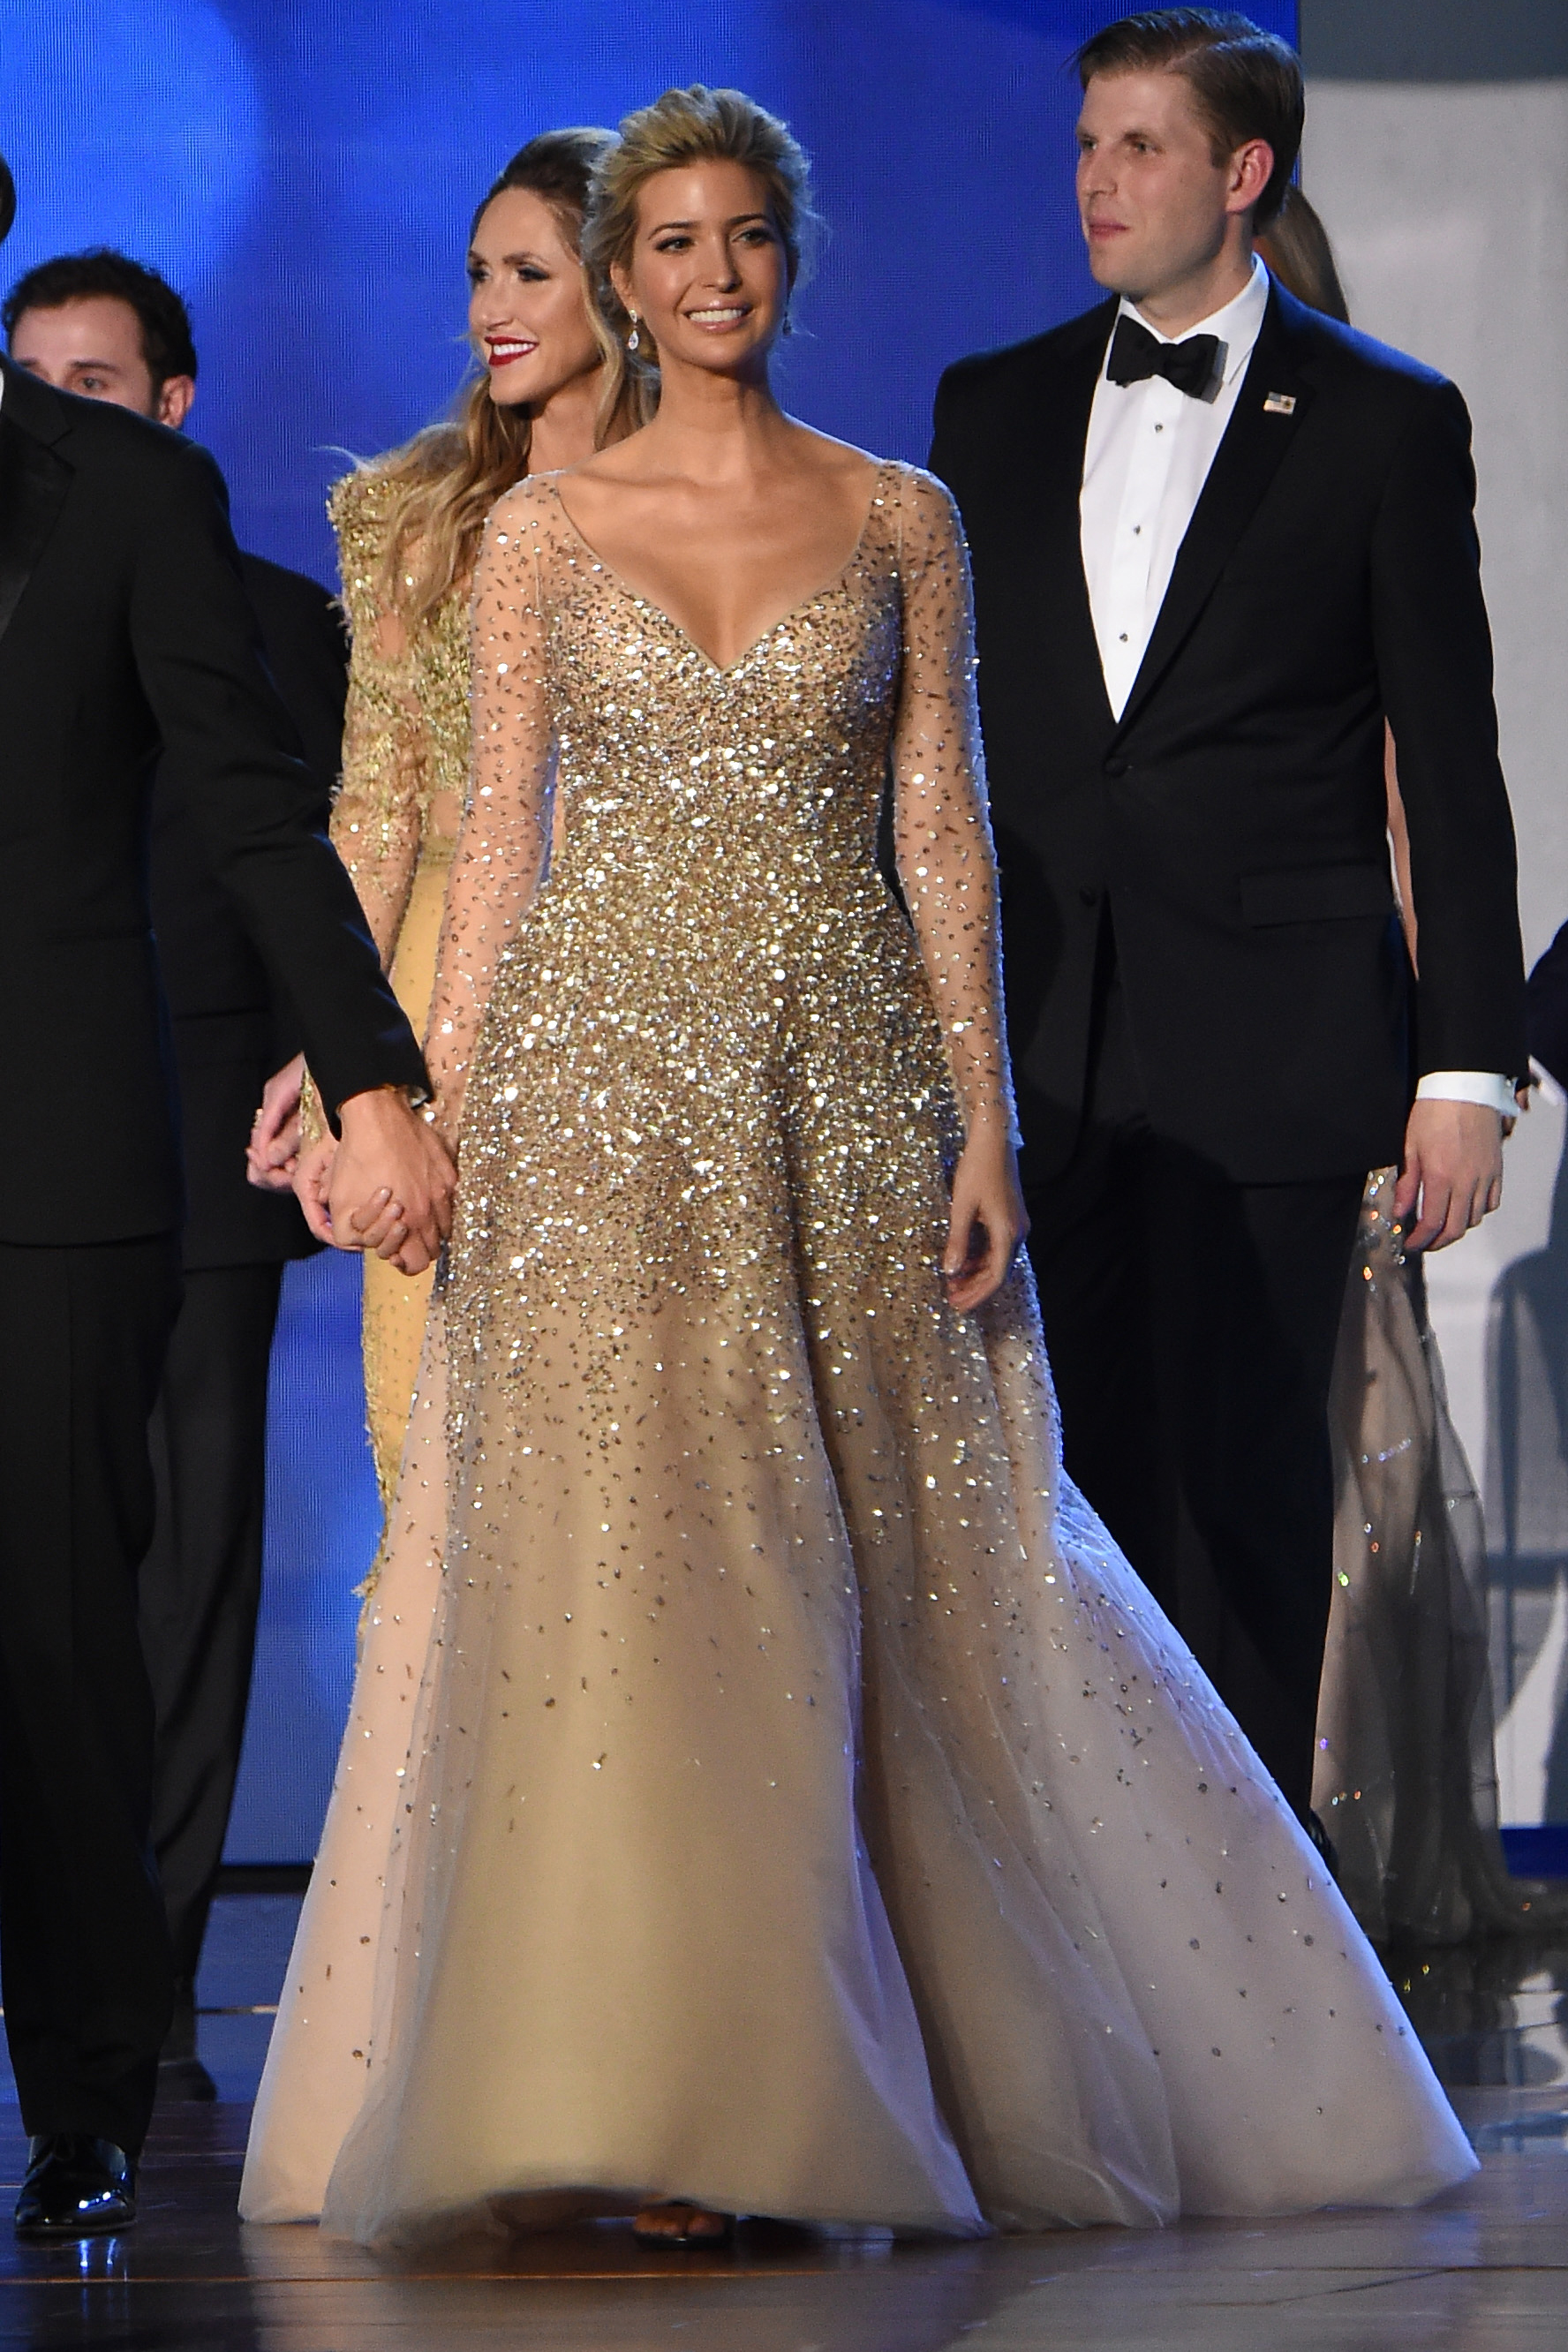 Ivanka Trump In A Sparkly Gold Carolina Herrera Gown At The Salute Our Armed Forces Inaugural